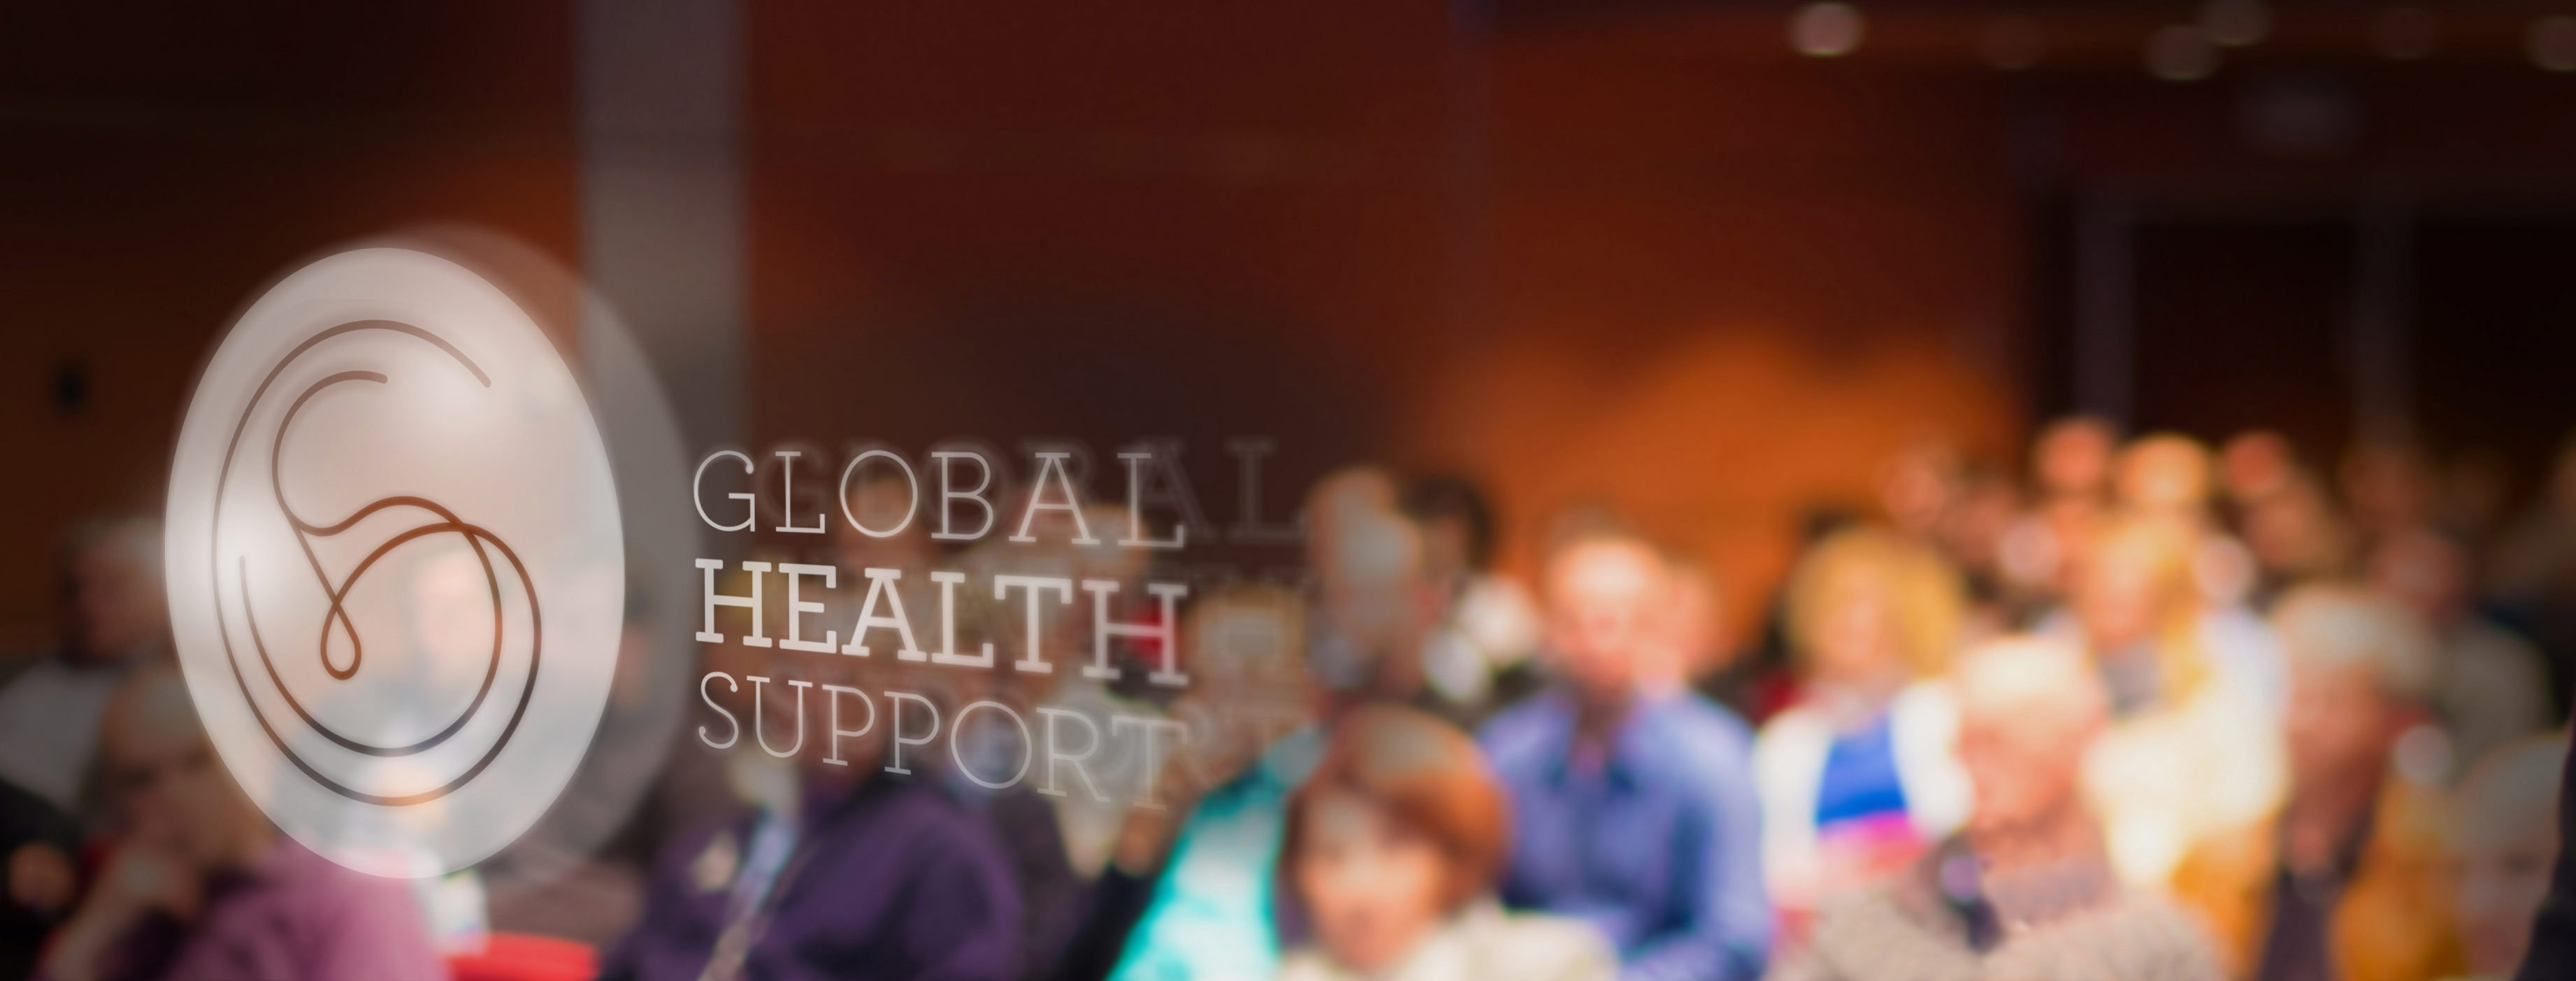 Global Health Support